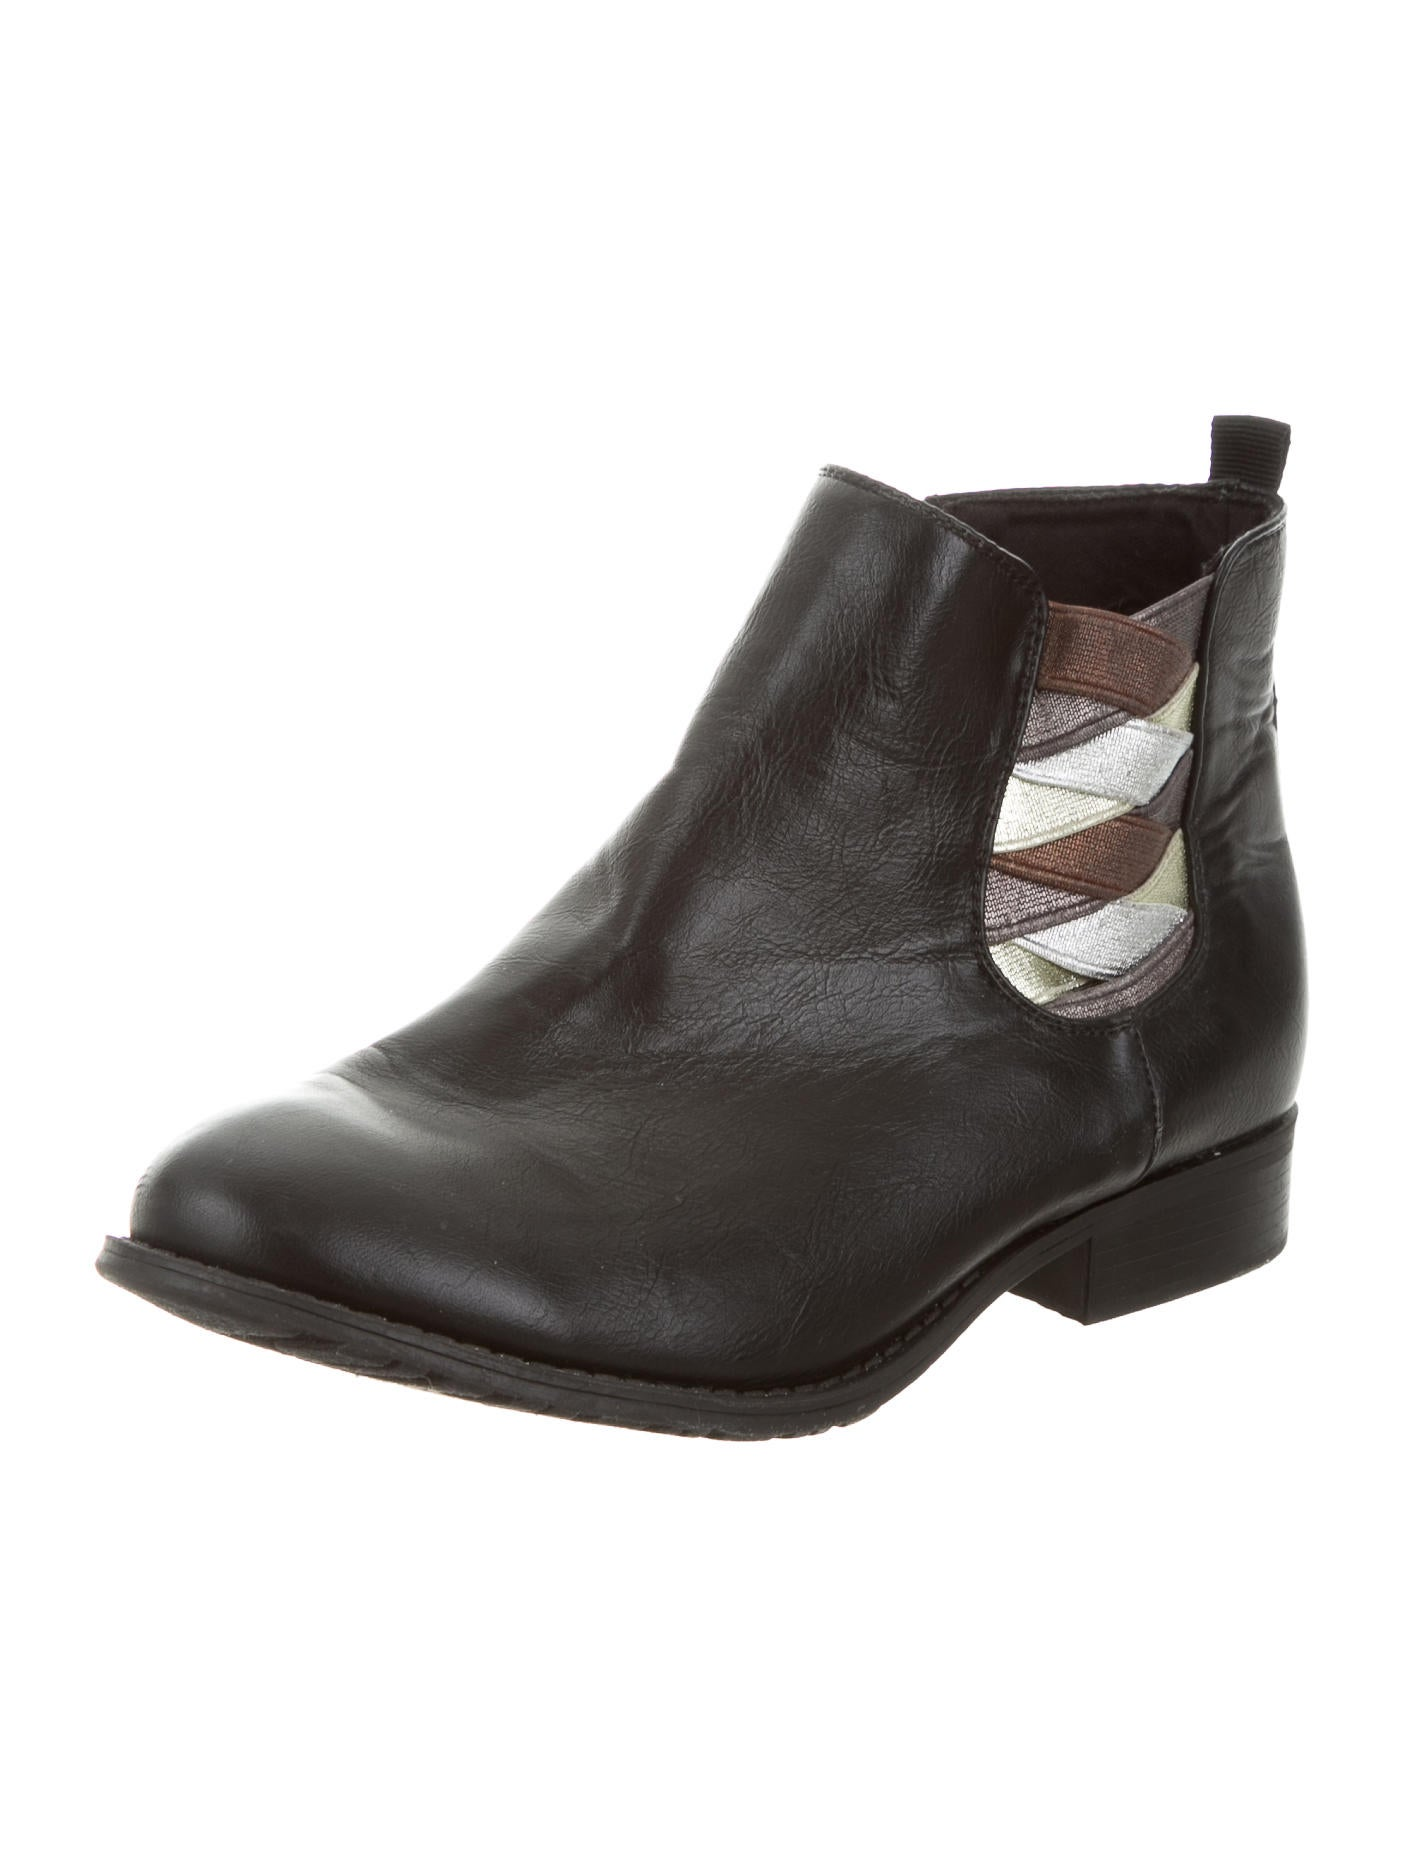 Choose ankle booties and leather riding boots to perfect your everyday look or take it up a notch in sexy over-the-knee boots. Don't forget a pair of cute rain boots to stay stylish whatever the weather.